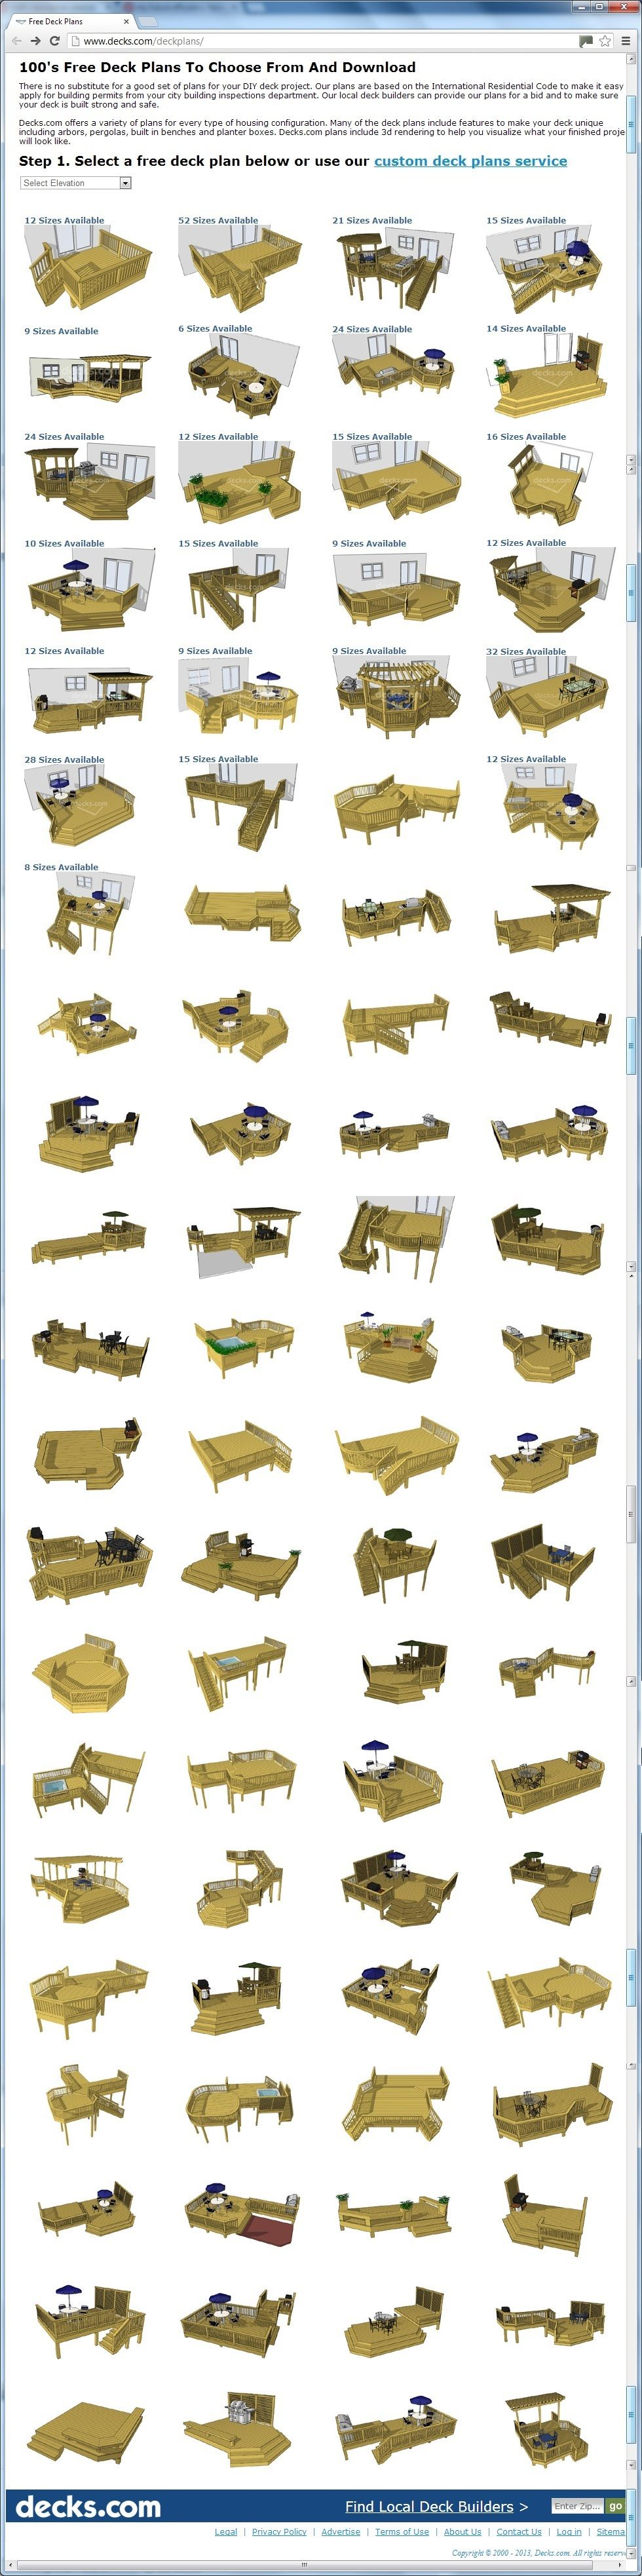 100's Of Free Deck Plans You Can Choose From And Download At